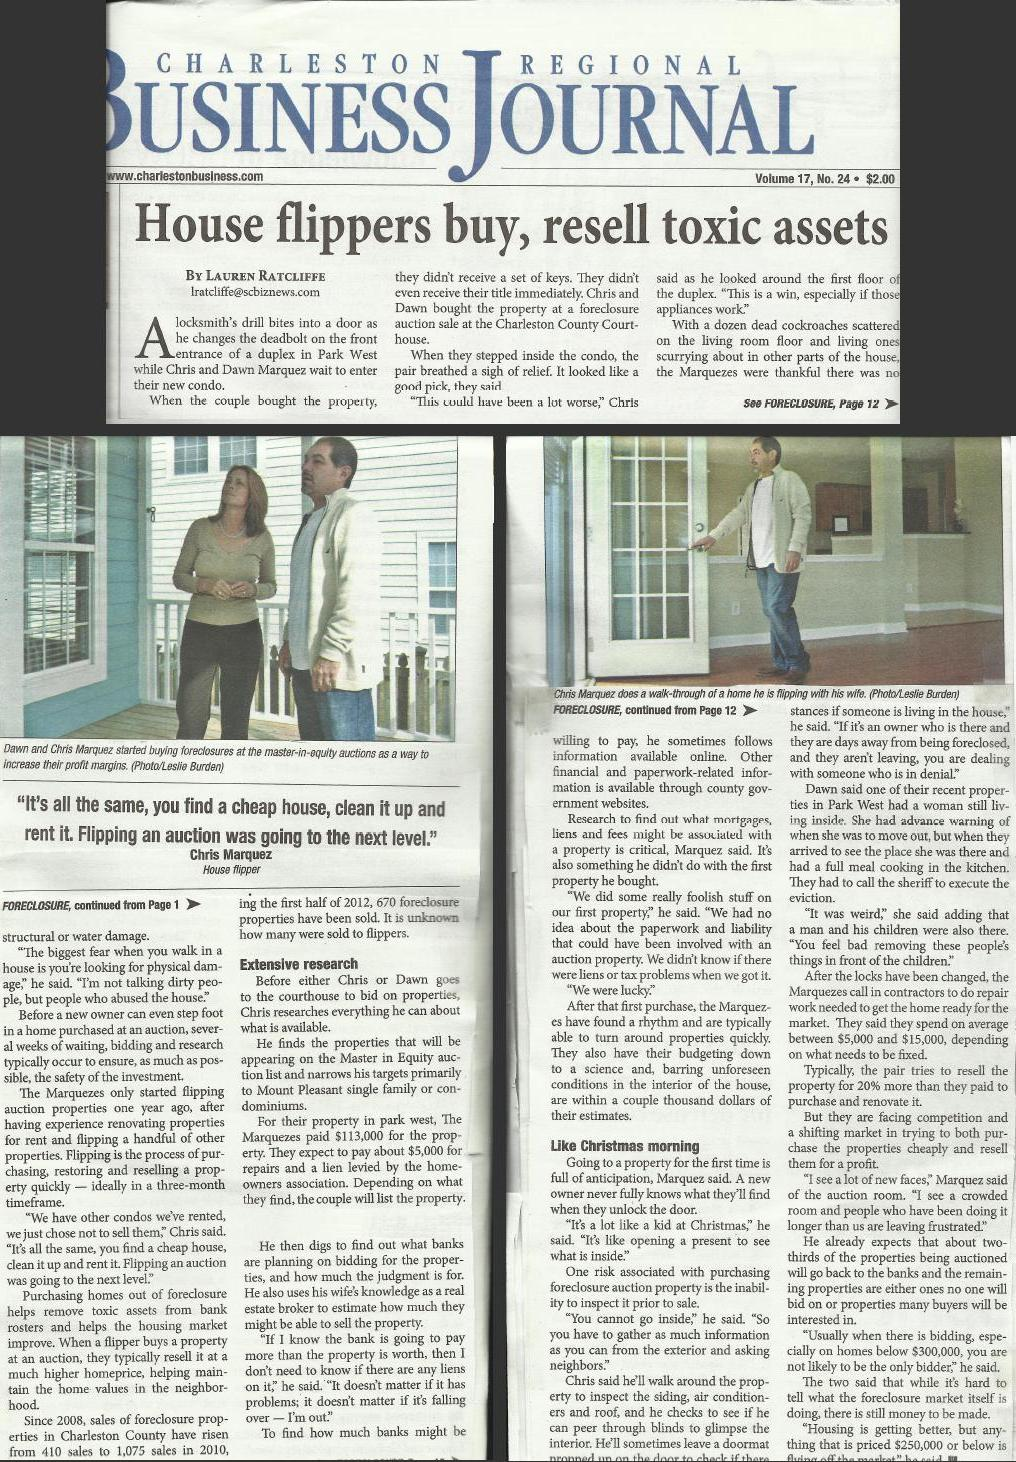 Charleston Business Journal Dawn & Chris Marquez House Flippers